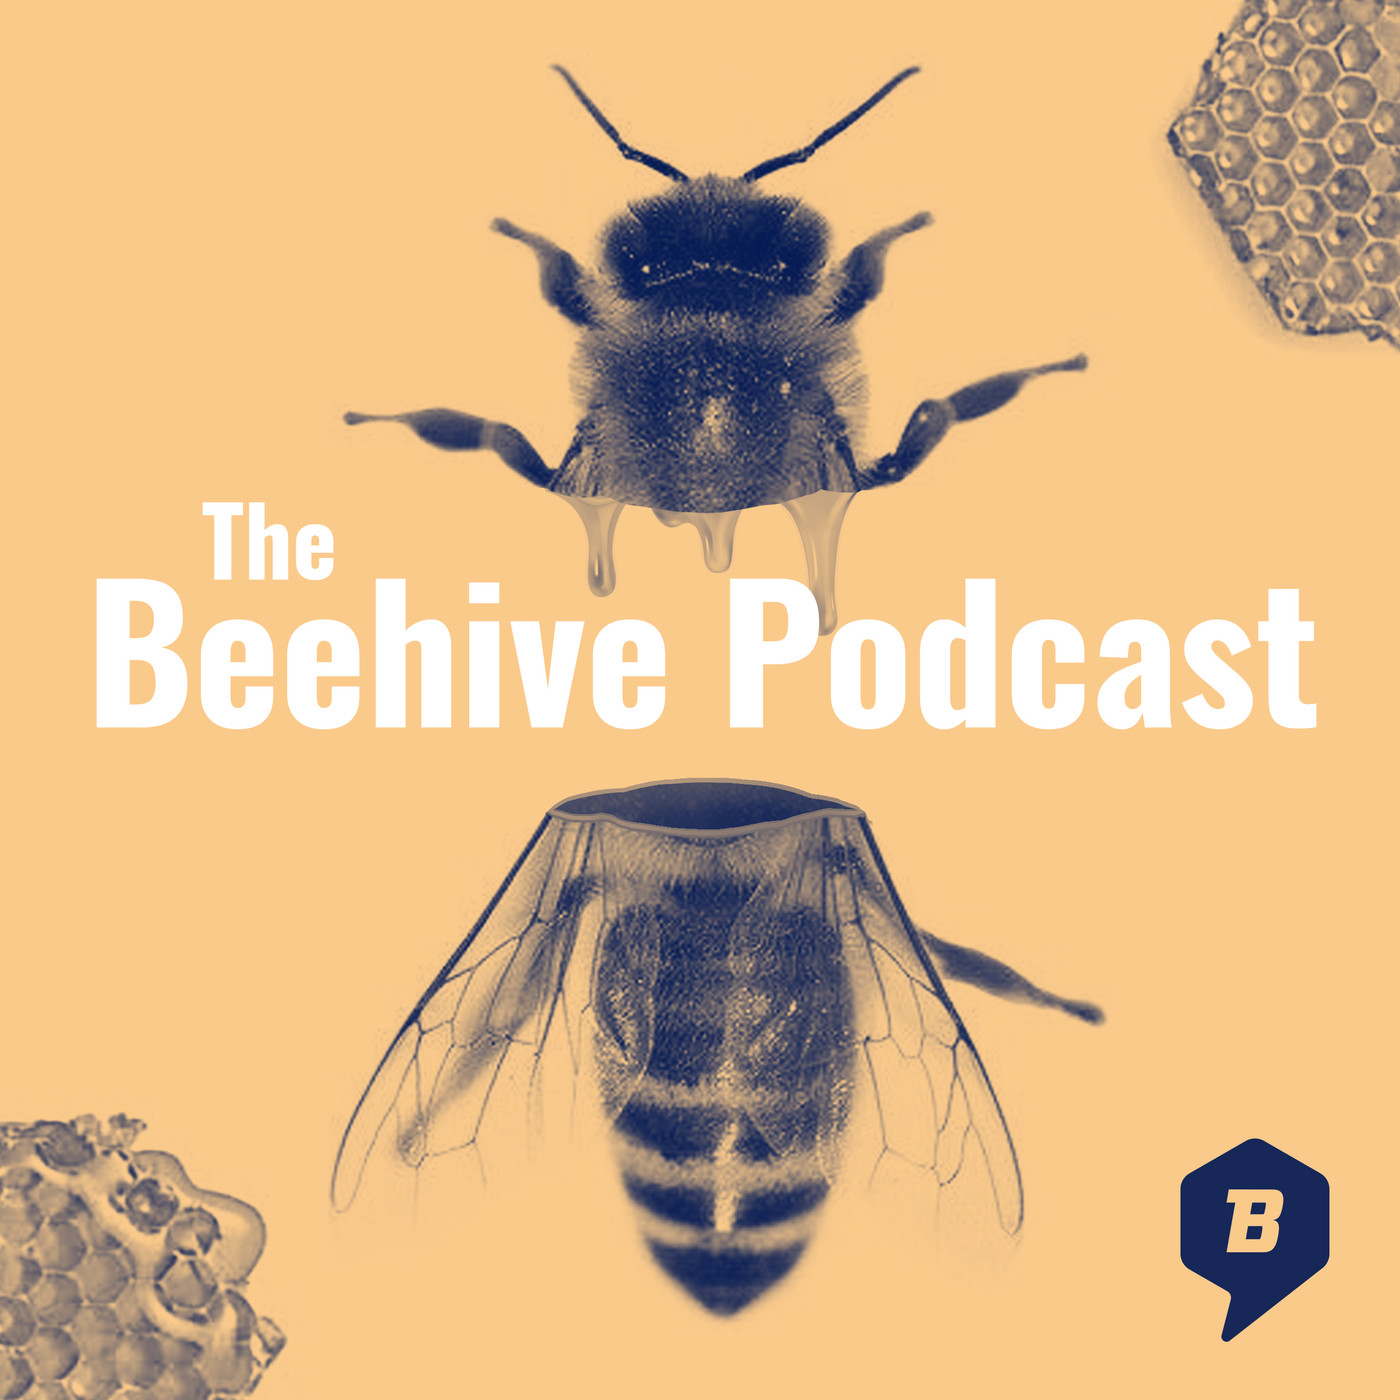 The Beehive Podcast